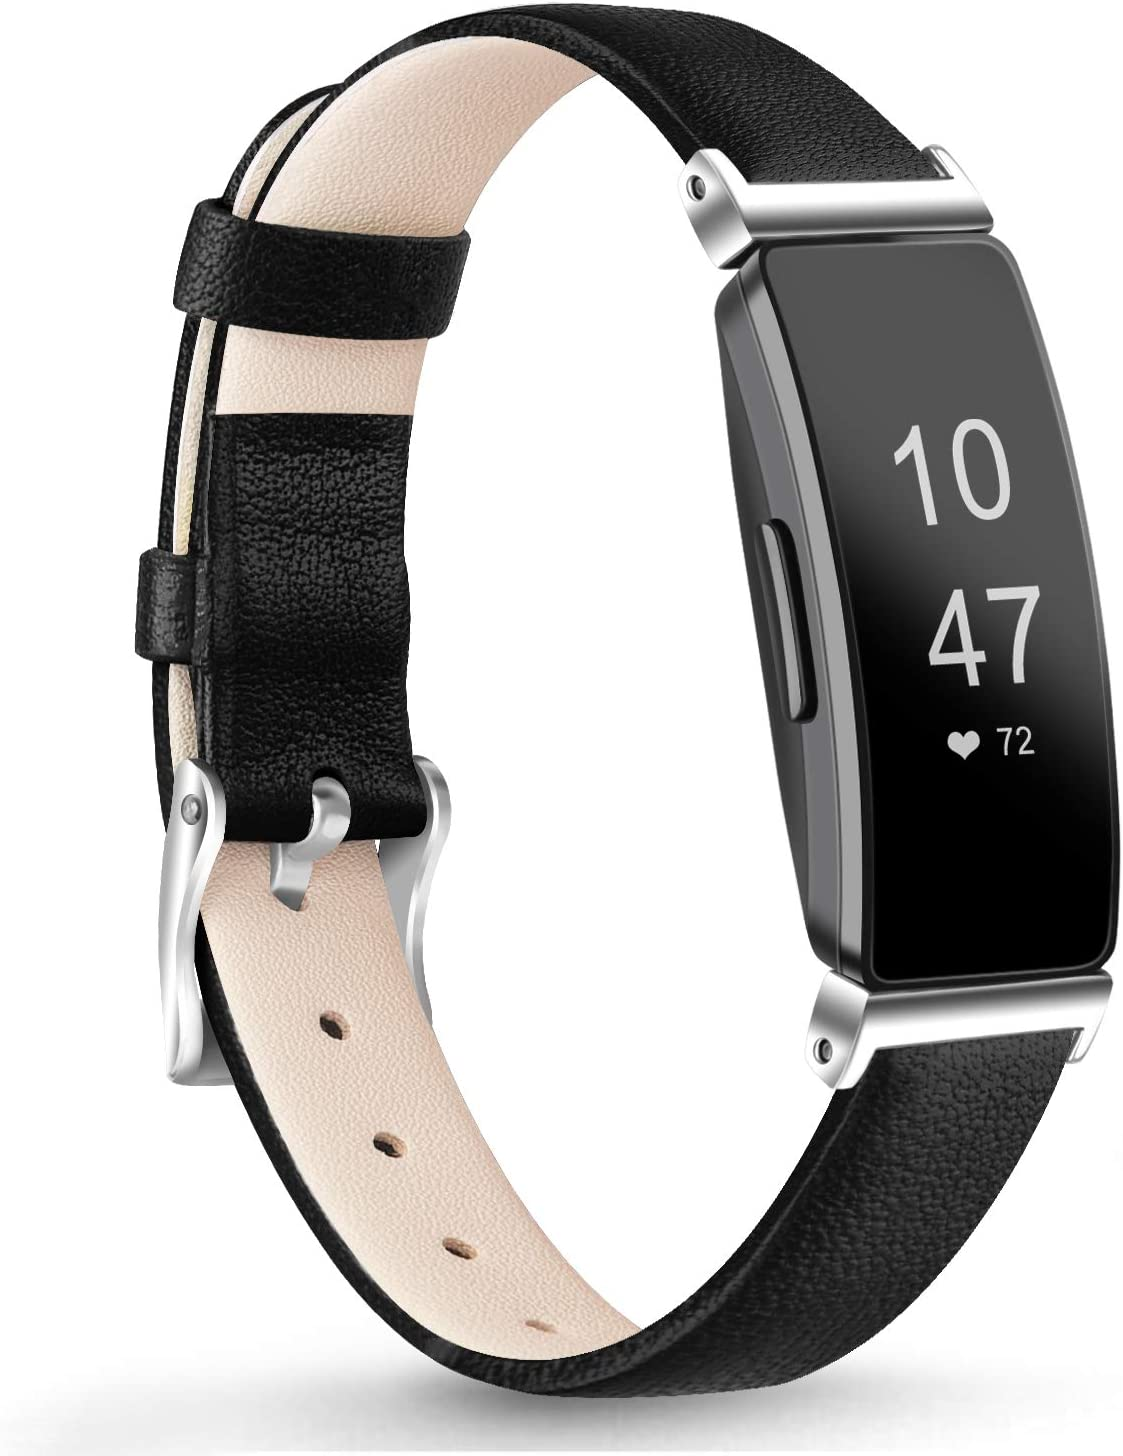 Vancle Leather Bands Compatible with Fitbit Inspire HR Band//Fitbit Inspire Band//Ace 2 Classic Genuine Leather Wristband Replacement with Stainless Steel Connector for Inspire HR Band//Fitbit Inspire Band//Ace 2 Fitness Activity Tracker Women Men Small Large